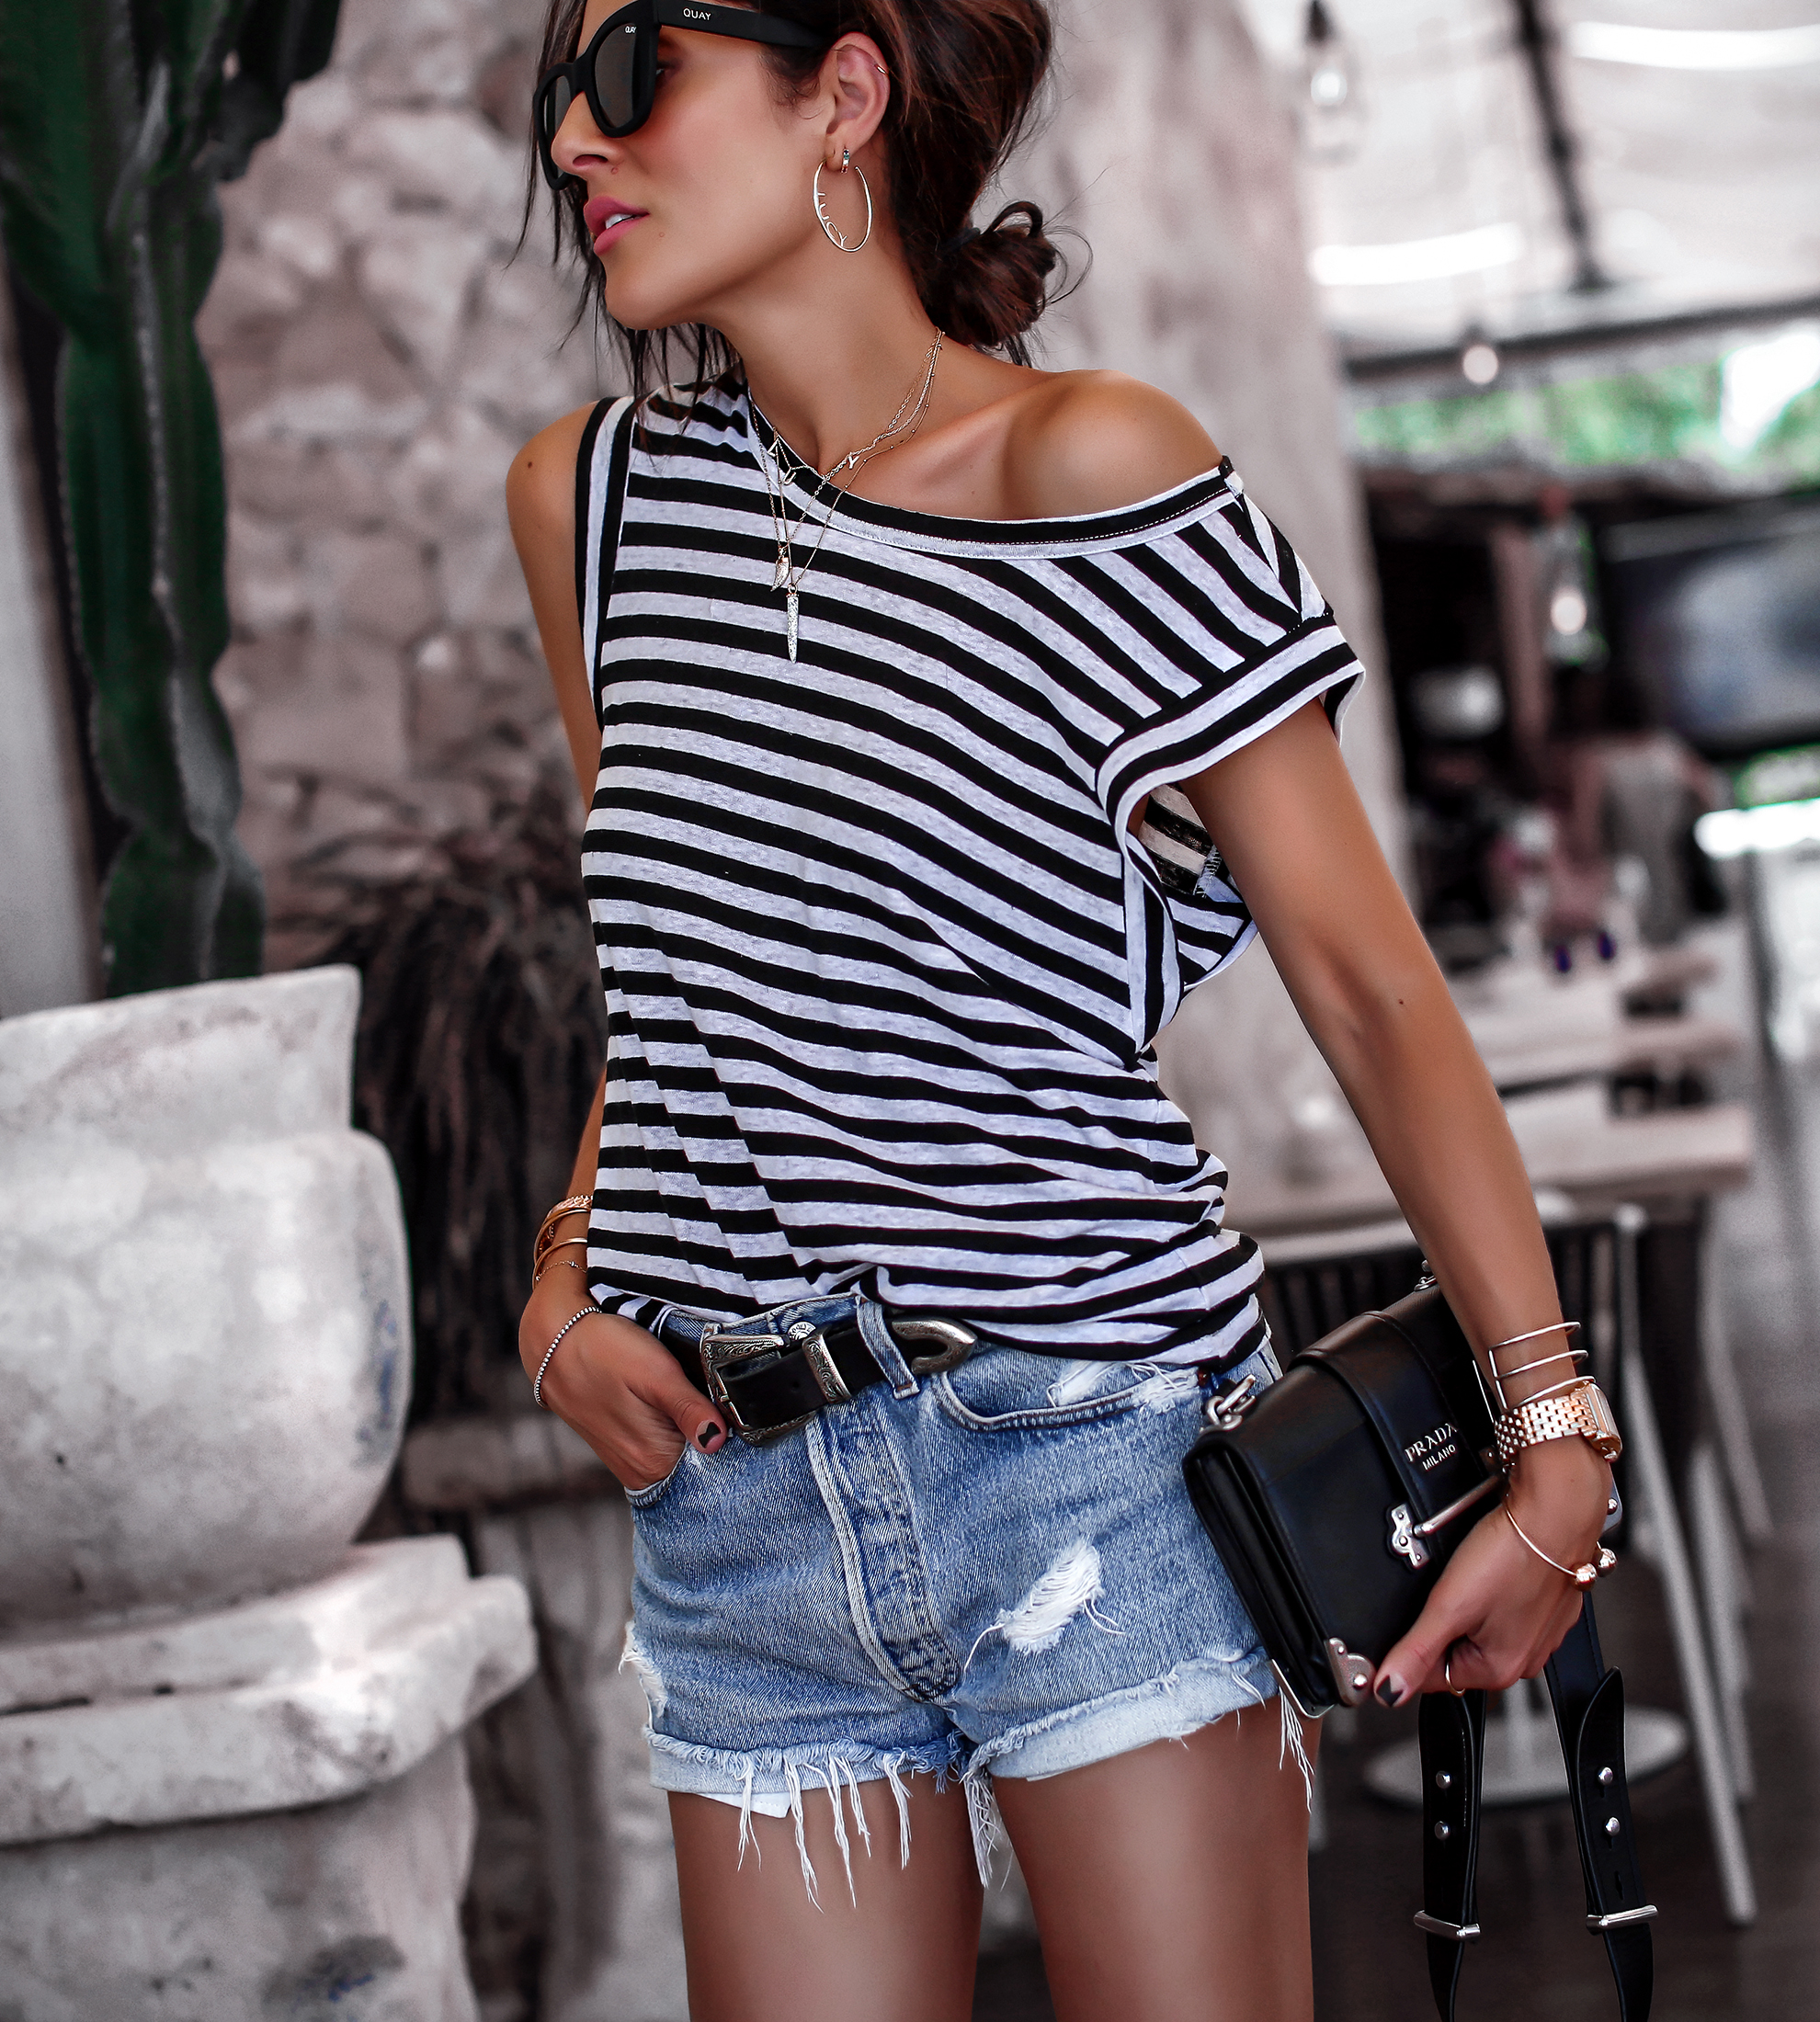 Brunette Woman in Jean Shorts Summer Style